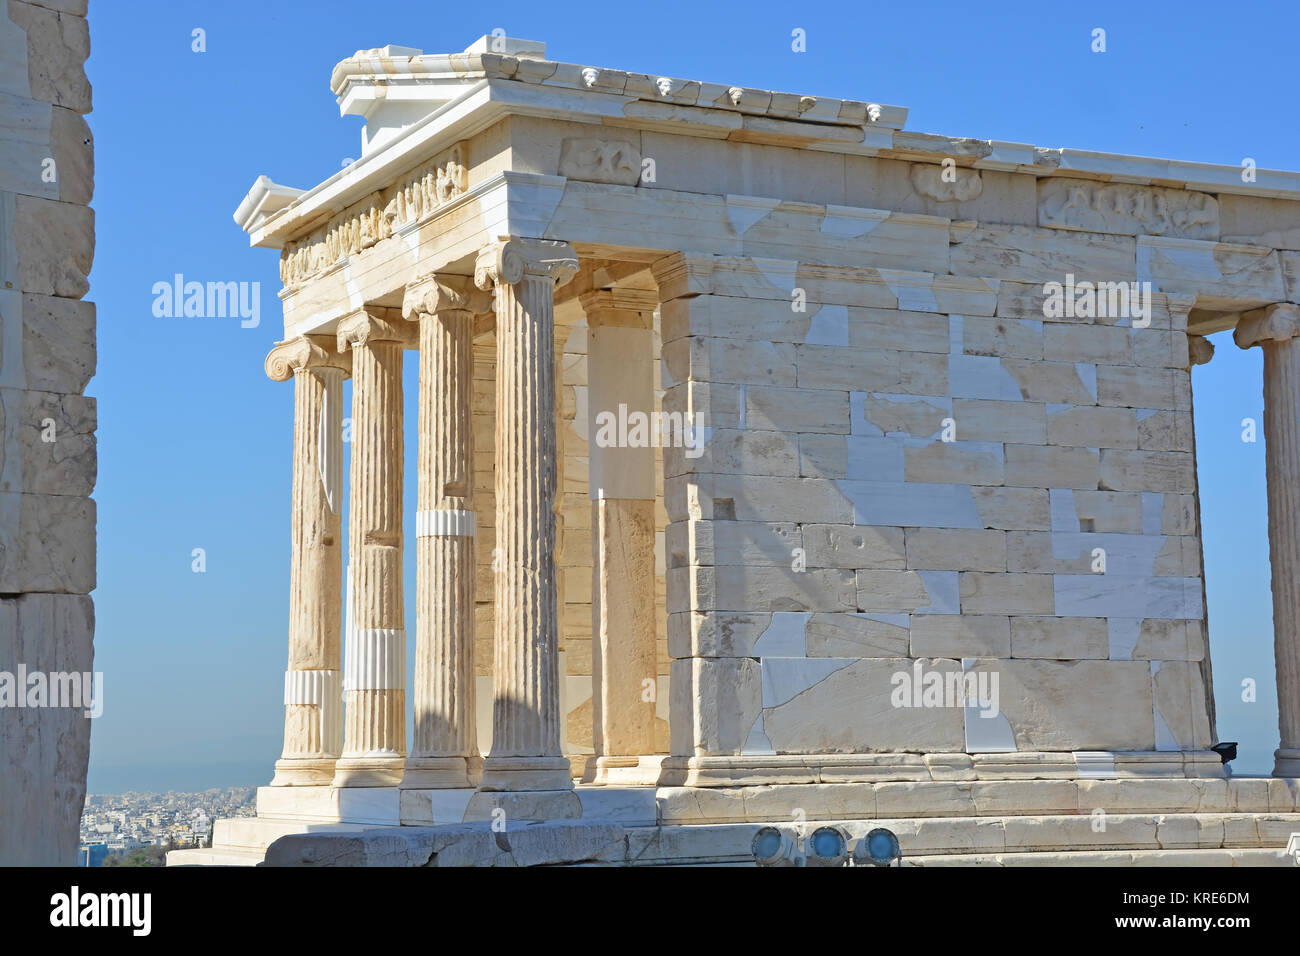 an analysis of the symbolism of the temple of athena nike an ancient greek temple The transliteration of modern and ancient greek ancient and modern: a comparative analysis the attic king after whom the classical temple of athena.